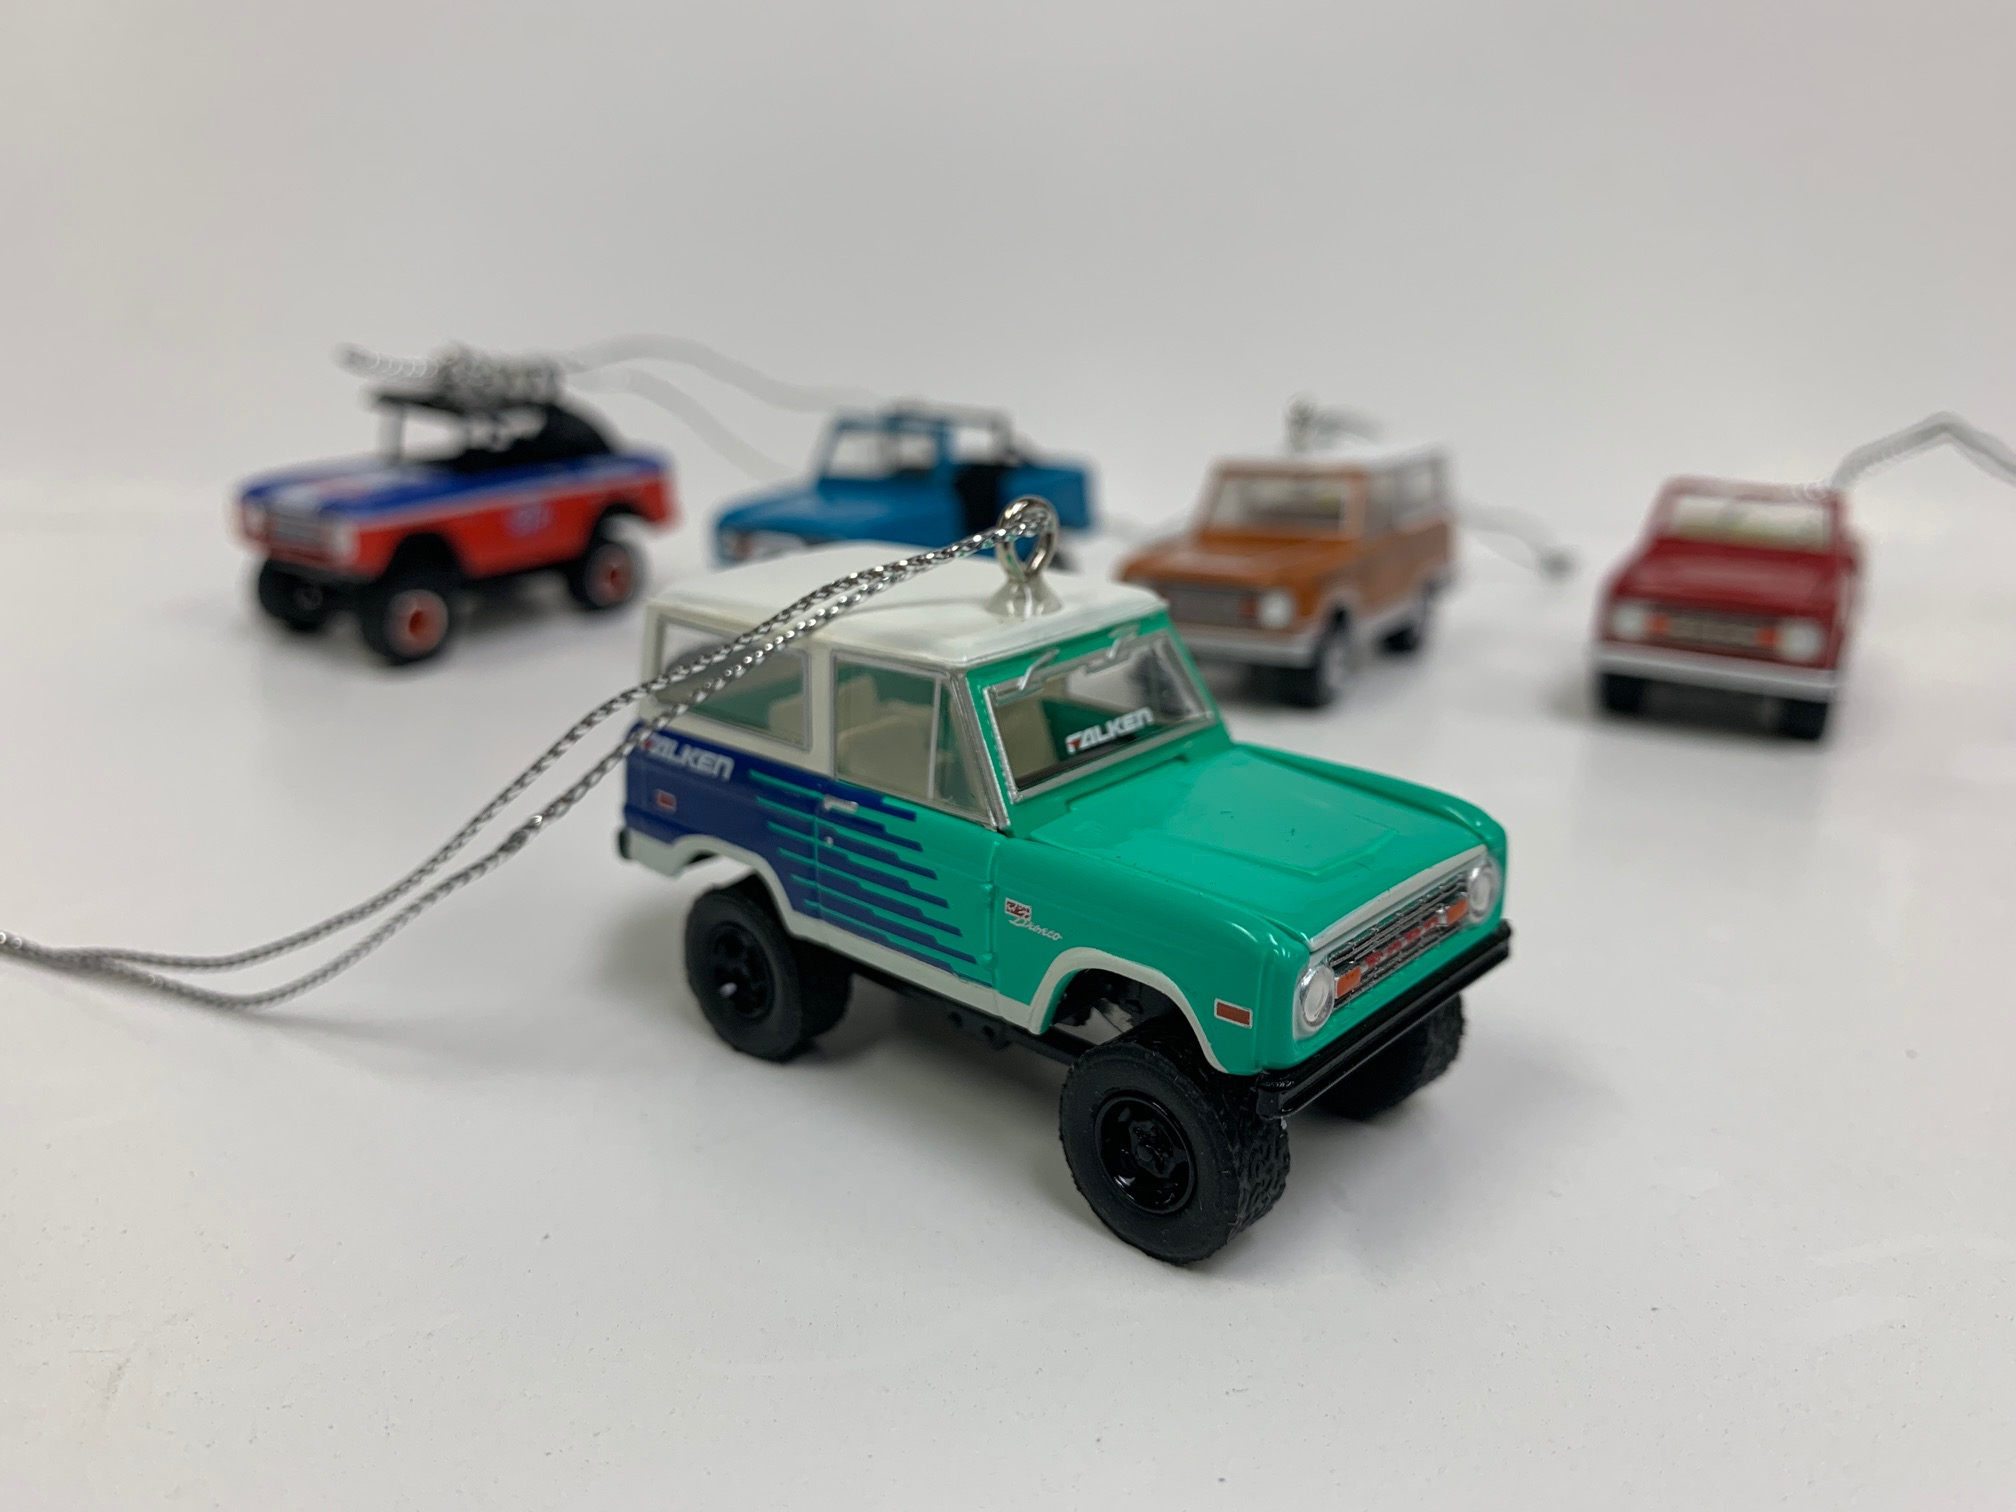 Christmas Ornament - 1974 Ford Bronco, Teal ''Falken Tires'', 1:64 Die Cast